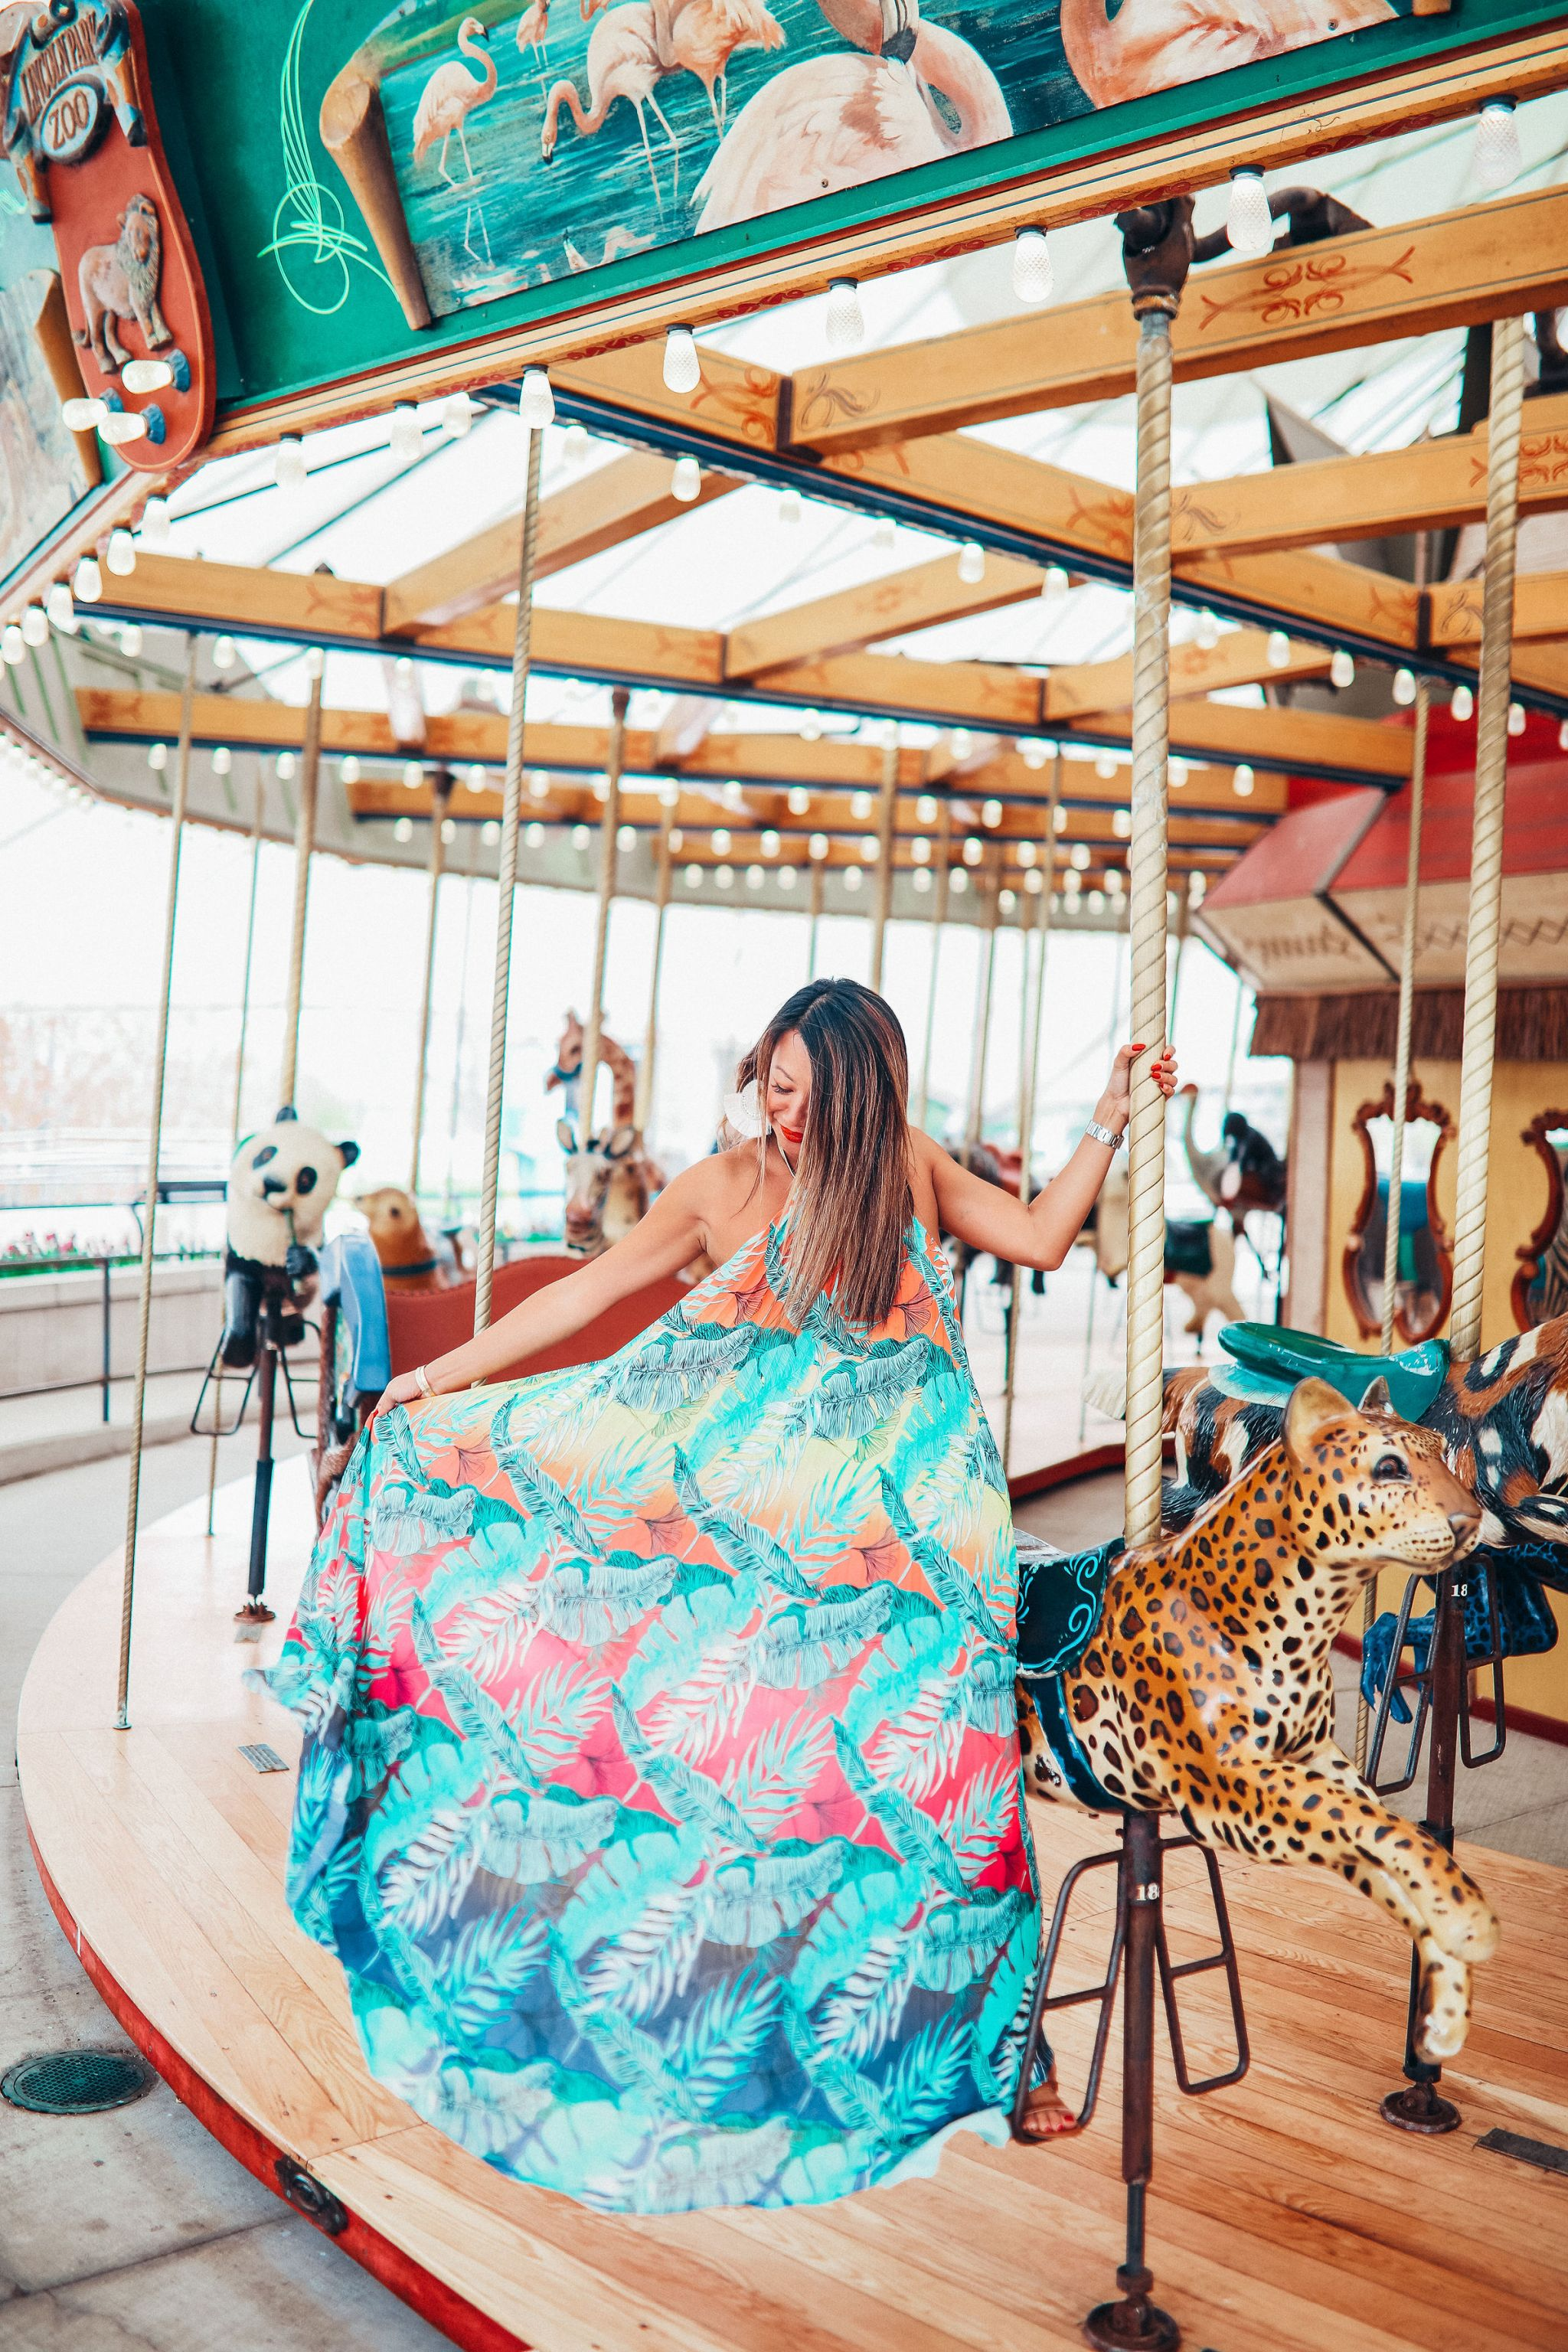 Jennifer Worman, Chicago Fashion Blogger, Where to take photos in Chicago, Chicago mom, Chicago Travel Blogger, Best Summer Style, What to wear to a summer wedding, Maxi Tropical Dress, Style under $100, Akira chicago